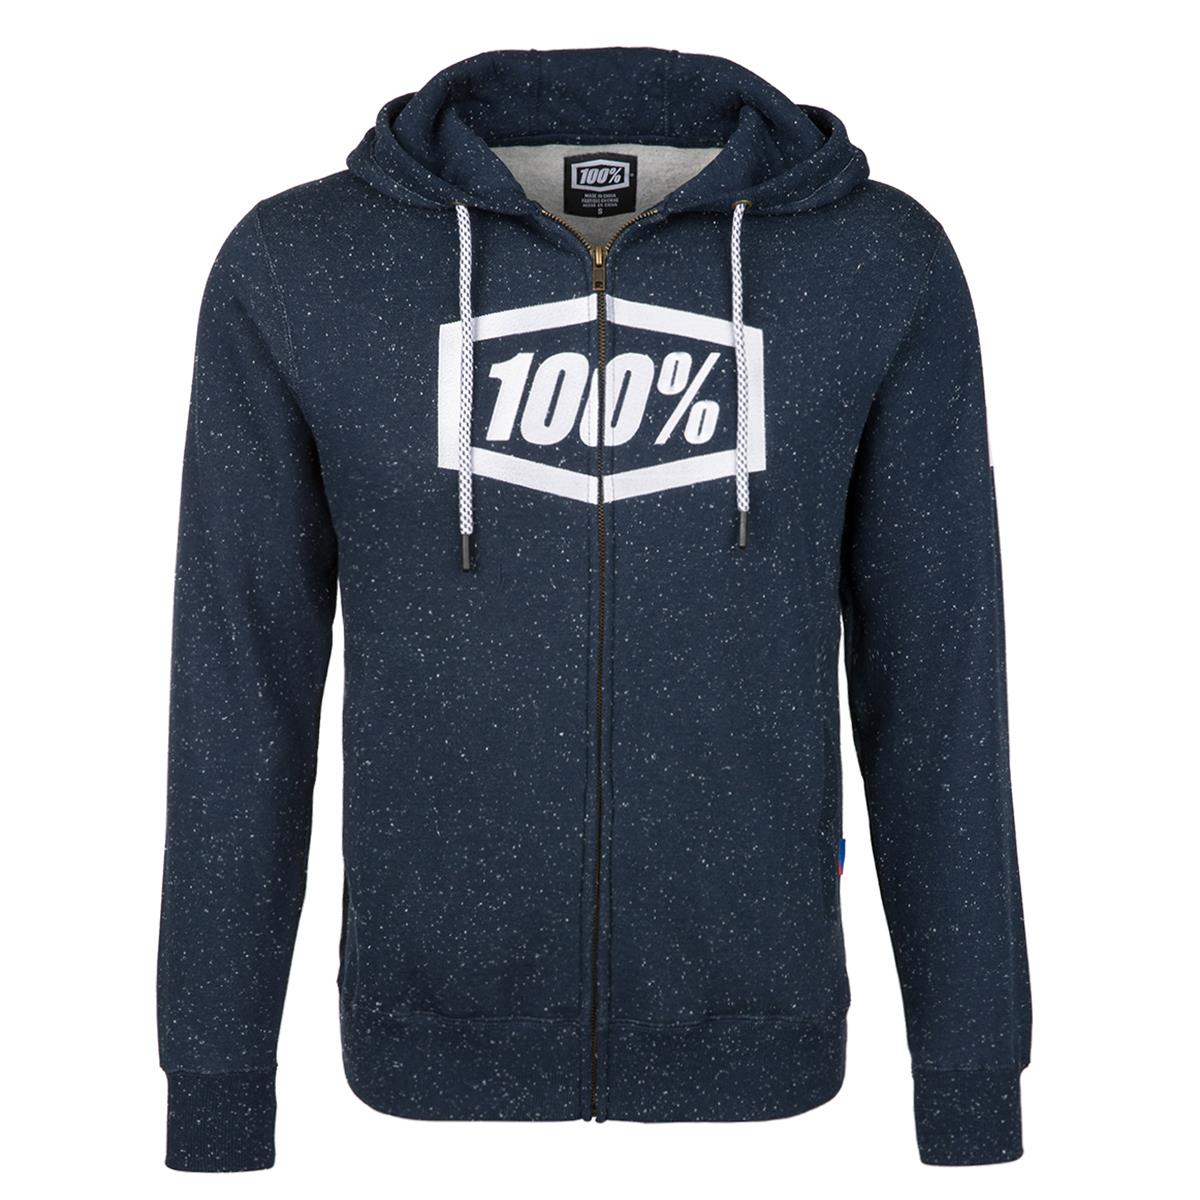 100% Zip-Hoody Syndicate Navy/Weiß